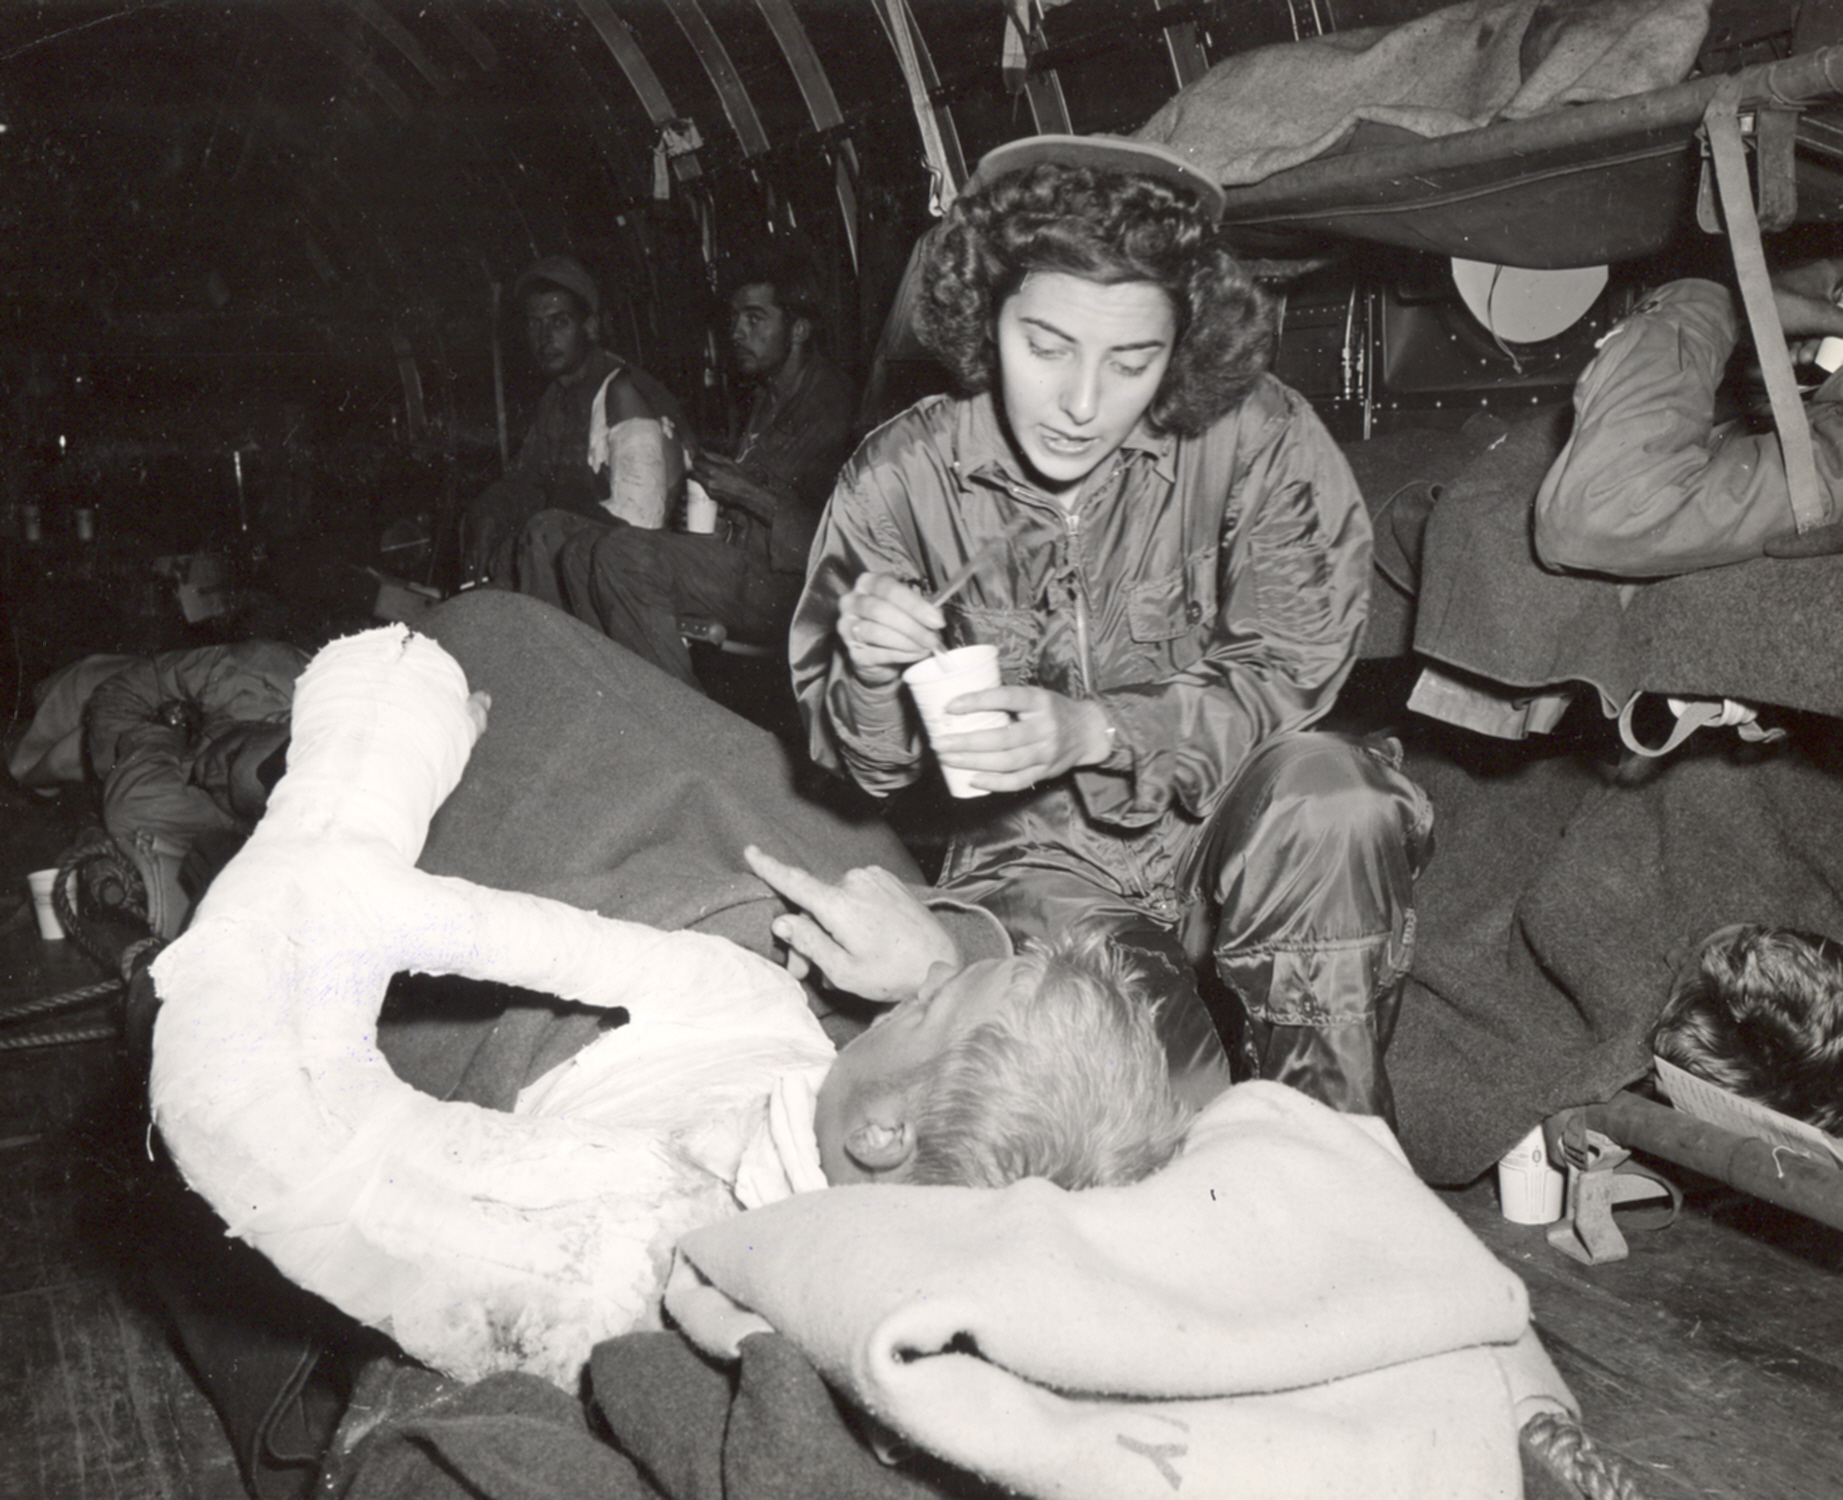 Flight Nurse Cares for Wounded on Trip from Iwo Jima